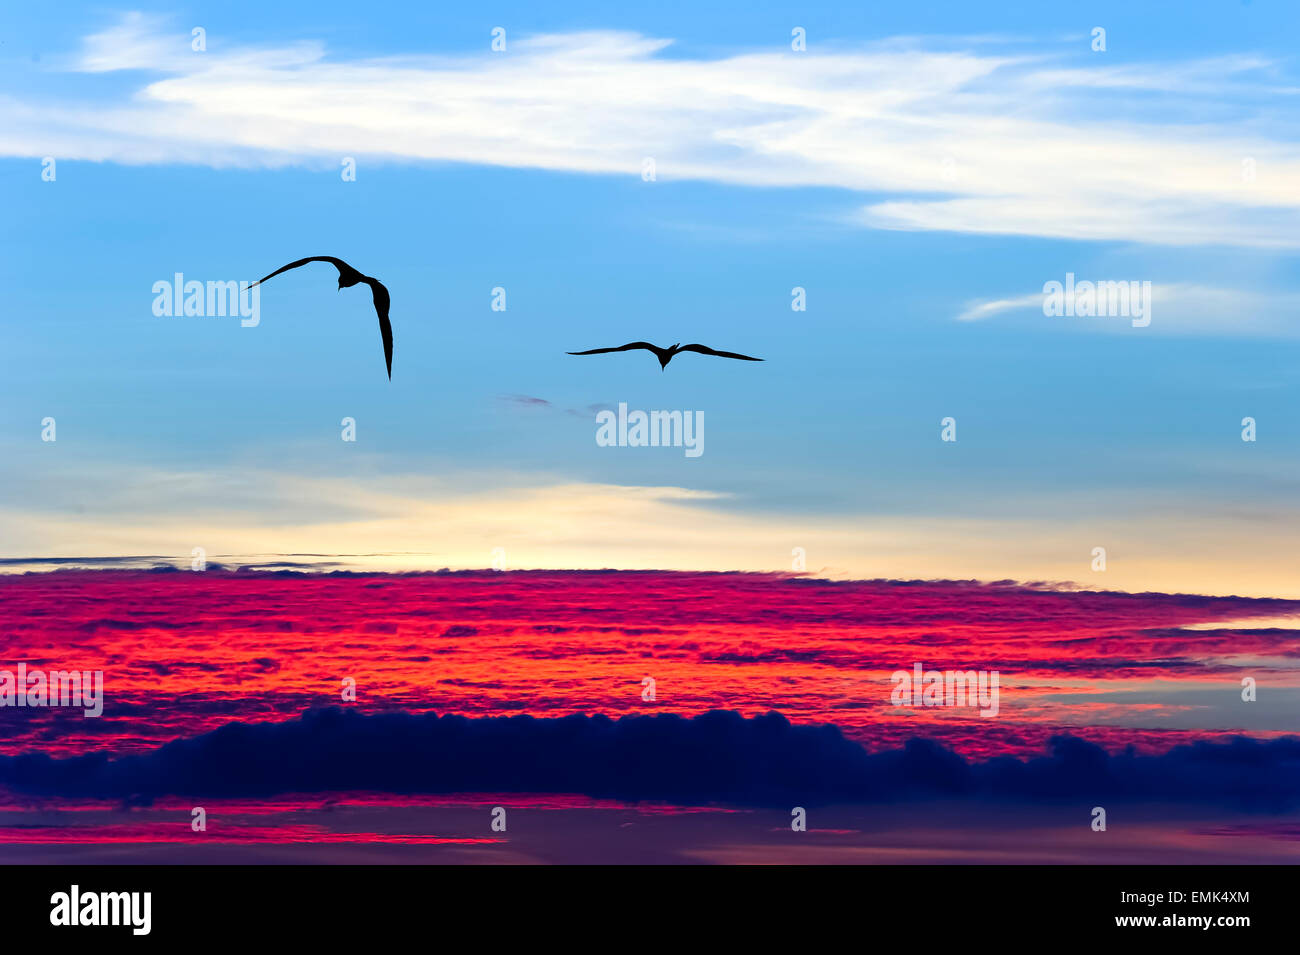 Two birds soar above the clouds against a blue sky and red and white clouds. Stock Photo